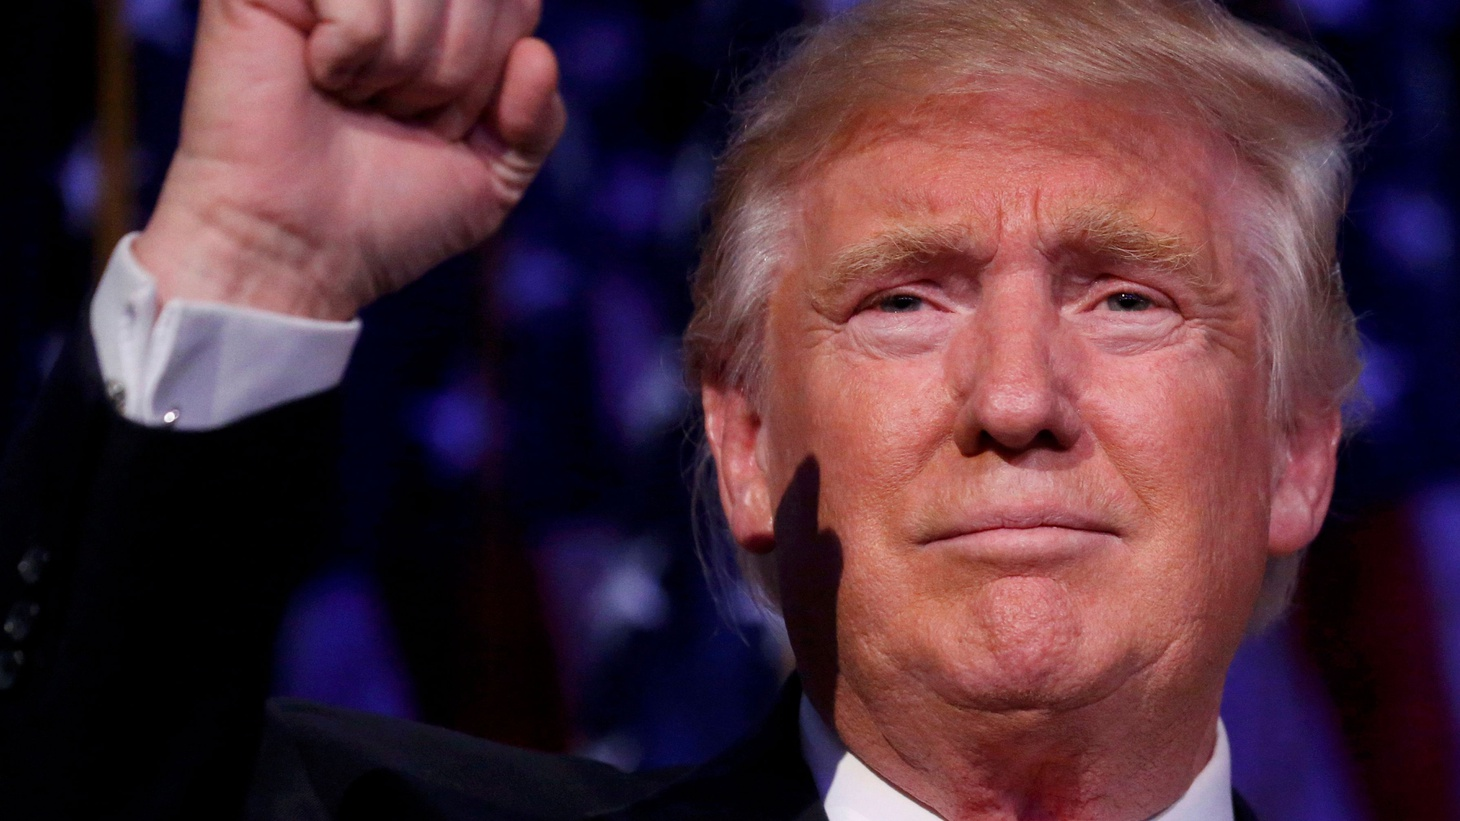 Early this morning, Donald Trump found himself President-elect of the United States in an upset victory over Hillary Clinton — who he threatened to put in jail if he were elected.In a rare tone of conciliation, he gave credit to his opponent.